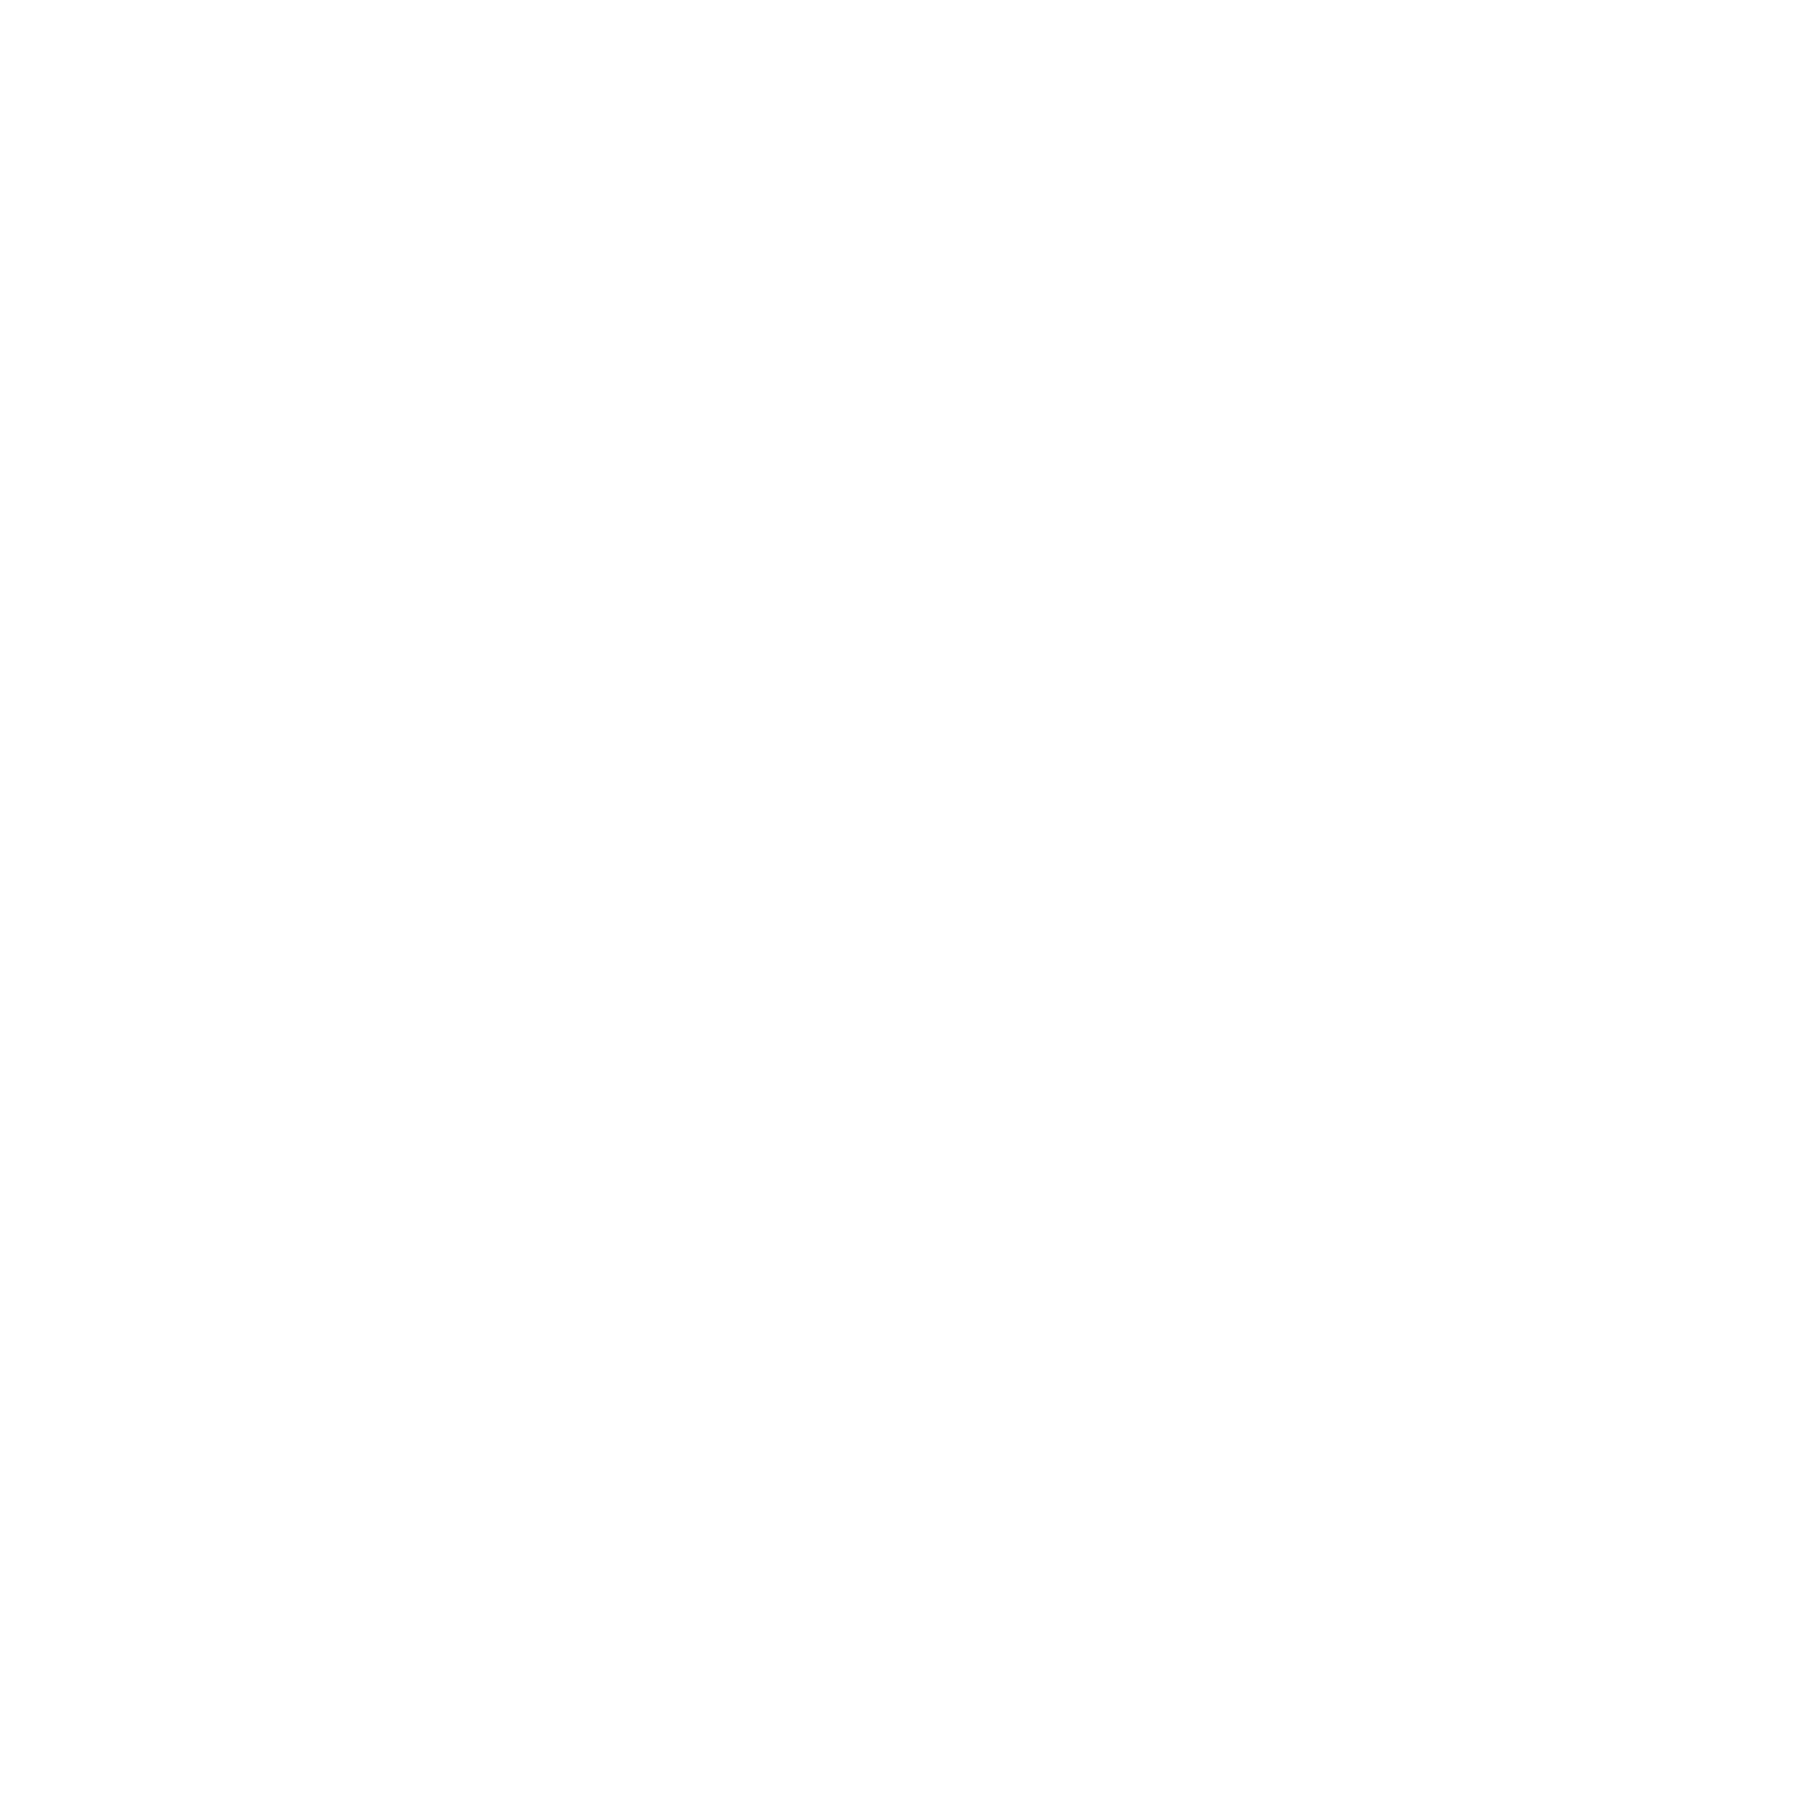 A link to the Ascension Parish Map Gallery